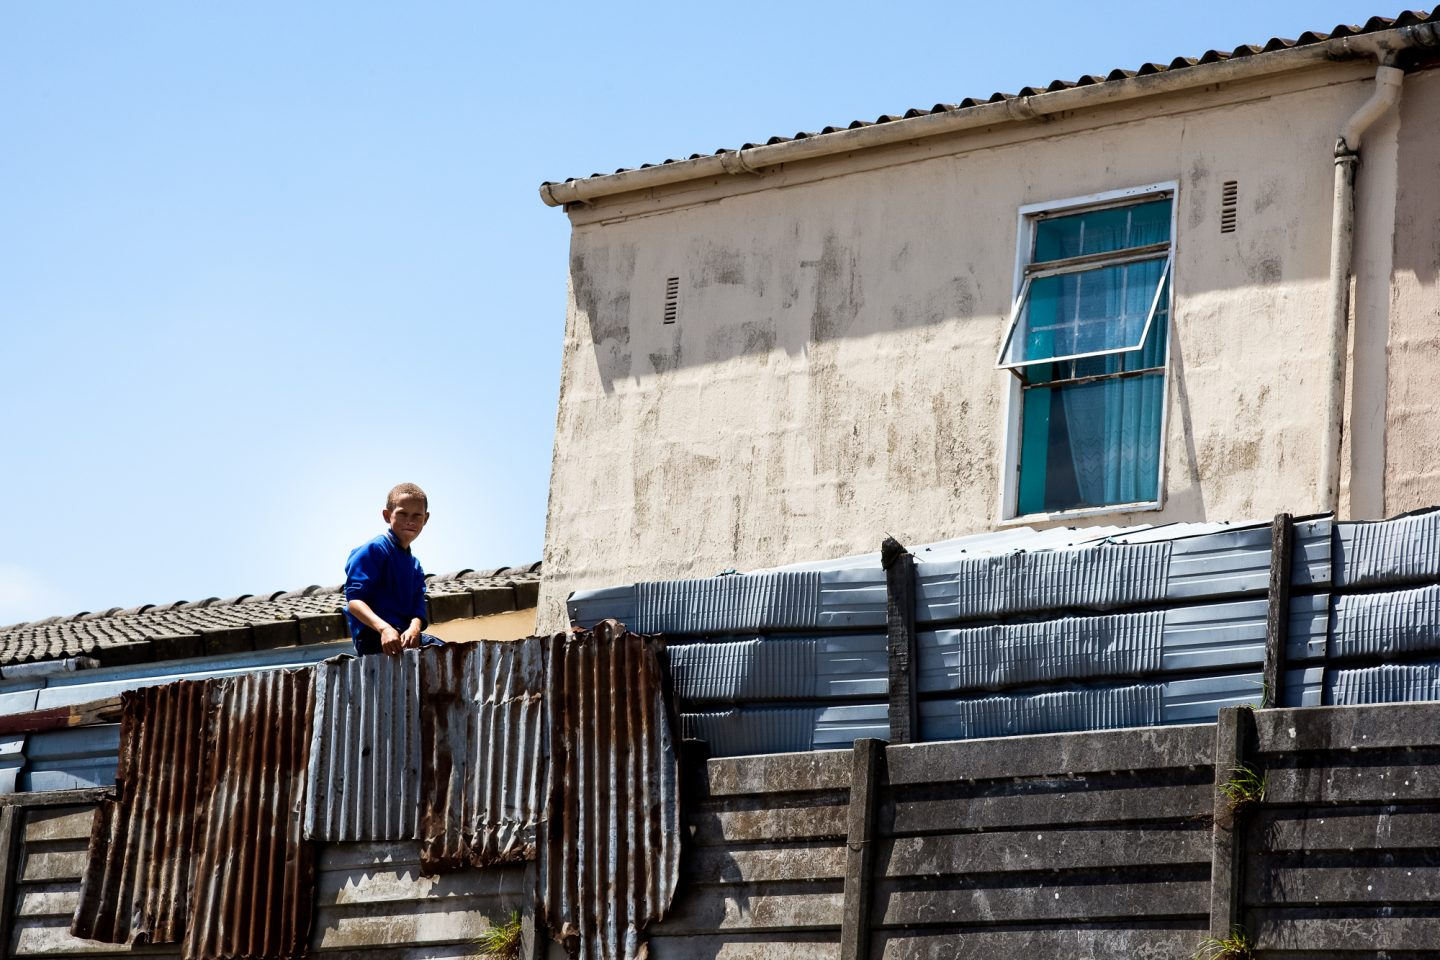 Looking onto the community field is a boy sitting on the fence of his family home.